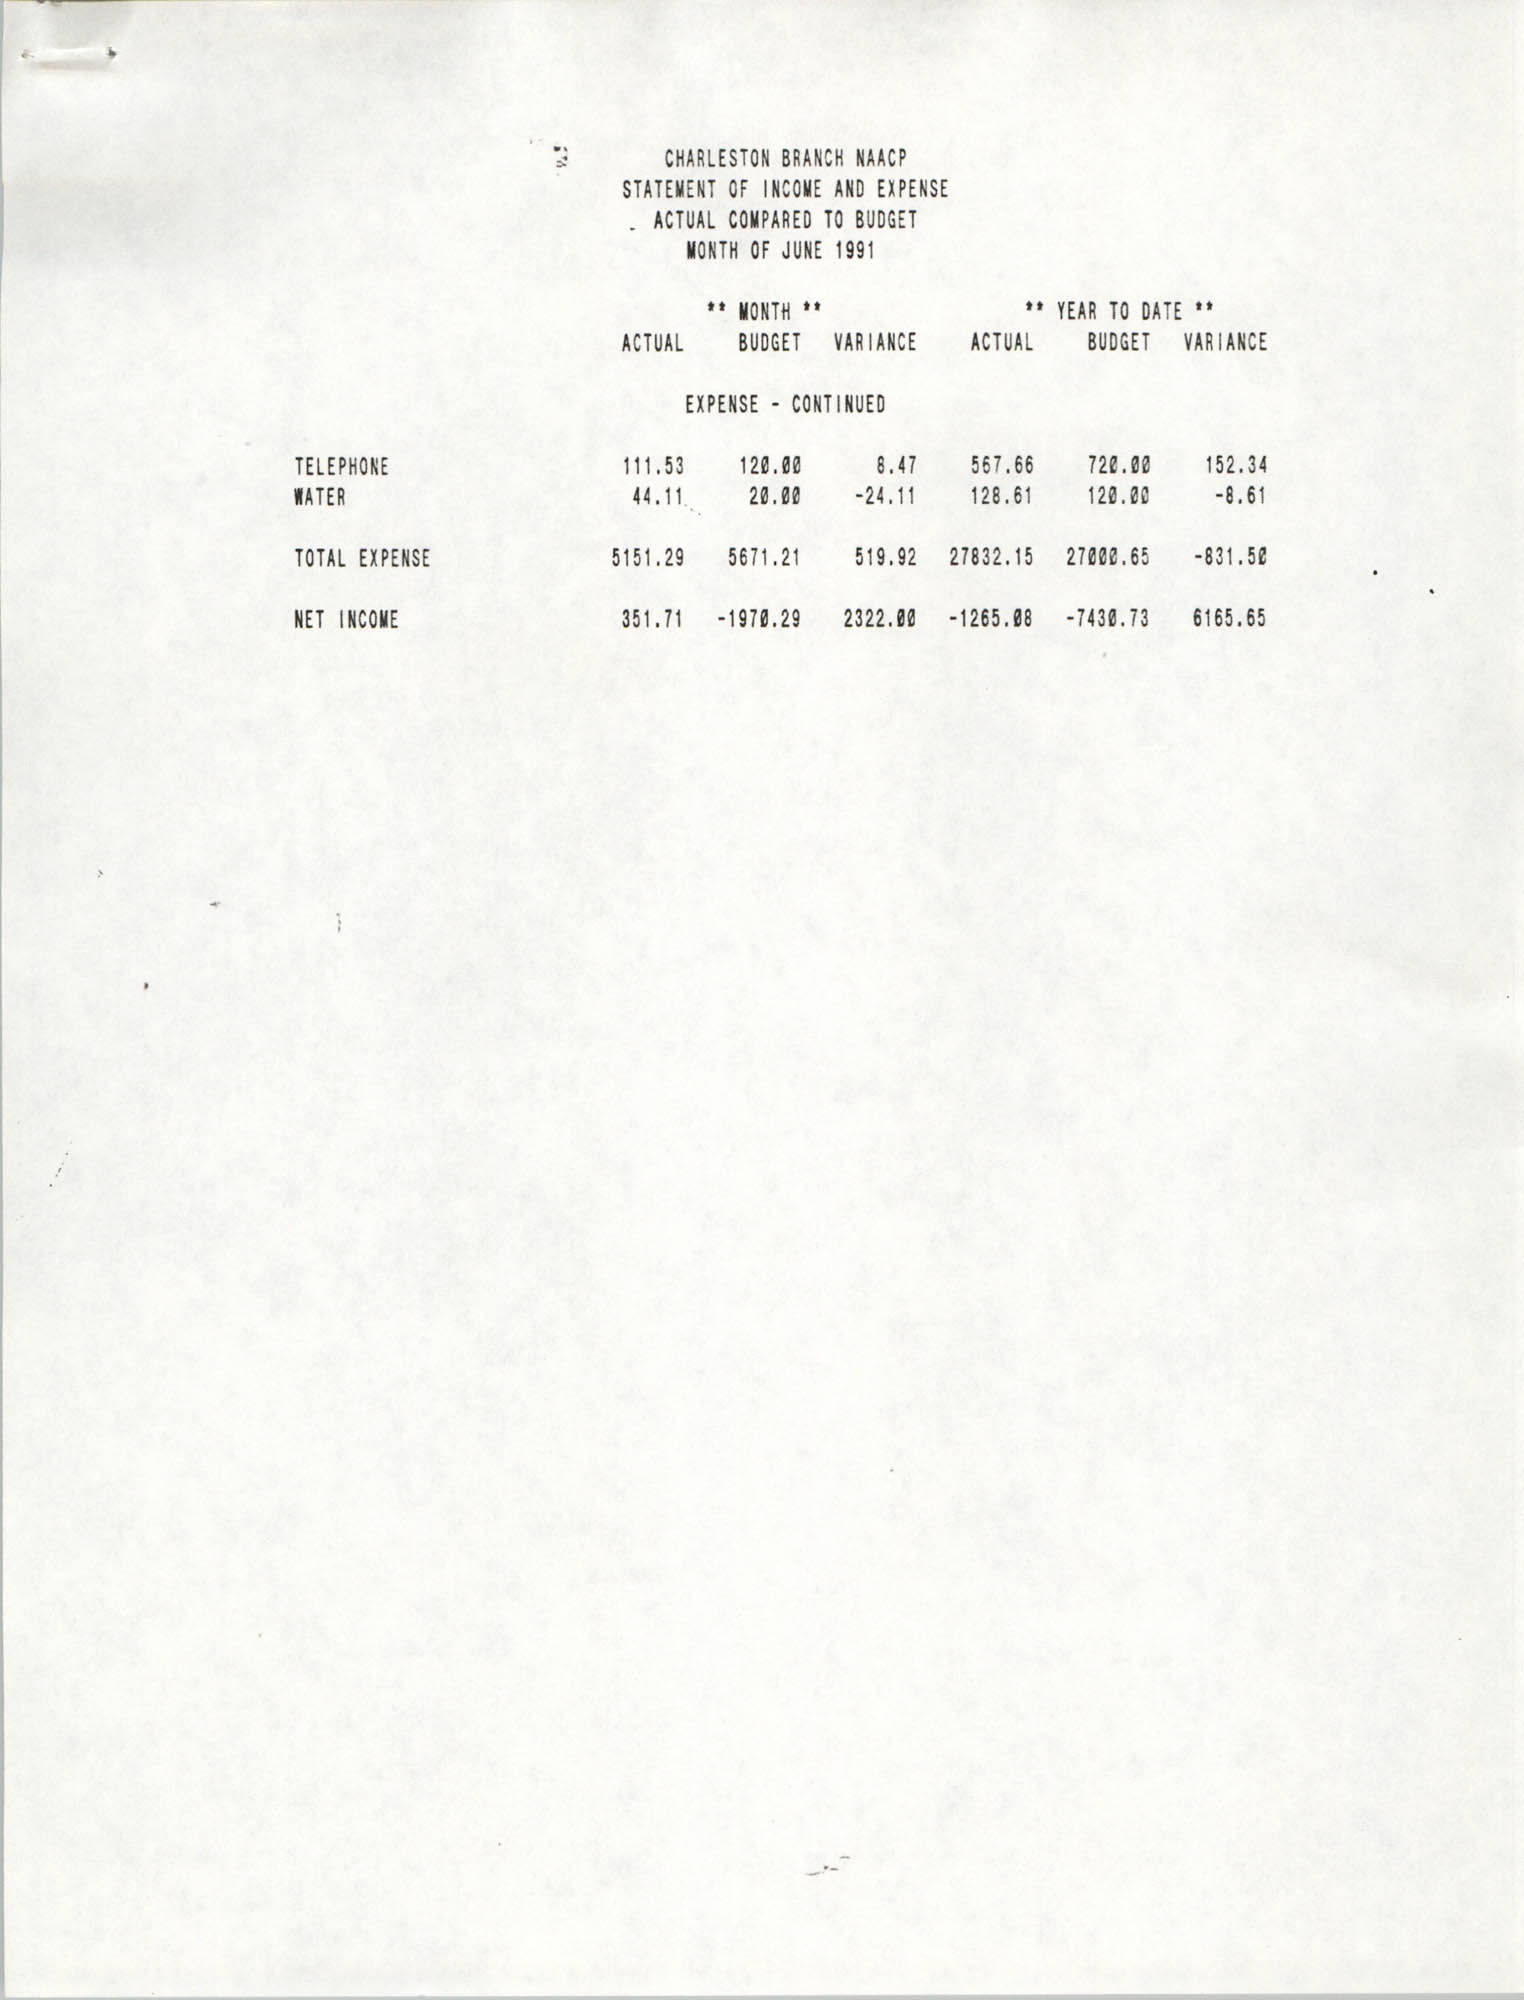 Charleston Branch of the NAACP Statement of Income and Expense, June 1991, Page 2